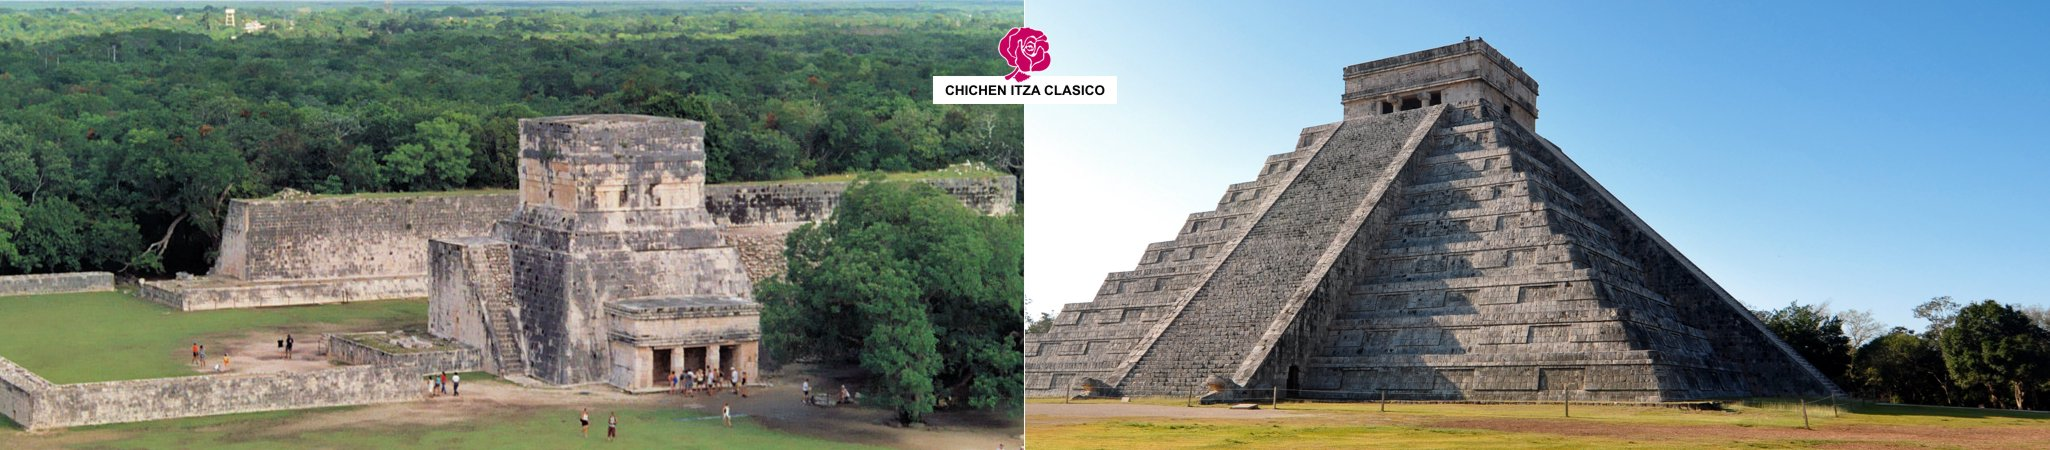 Tour a Chichen Itza